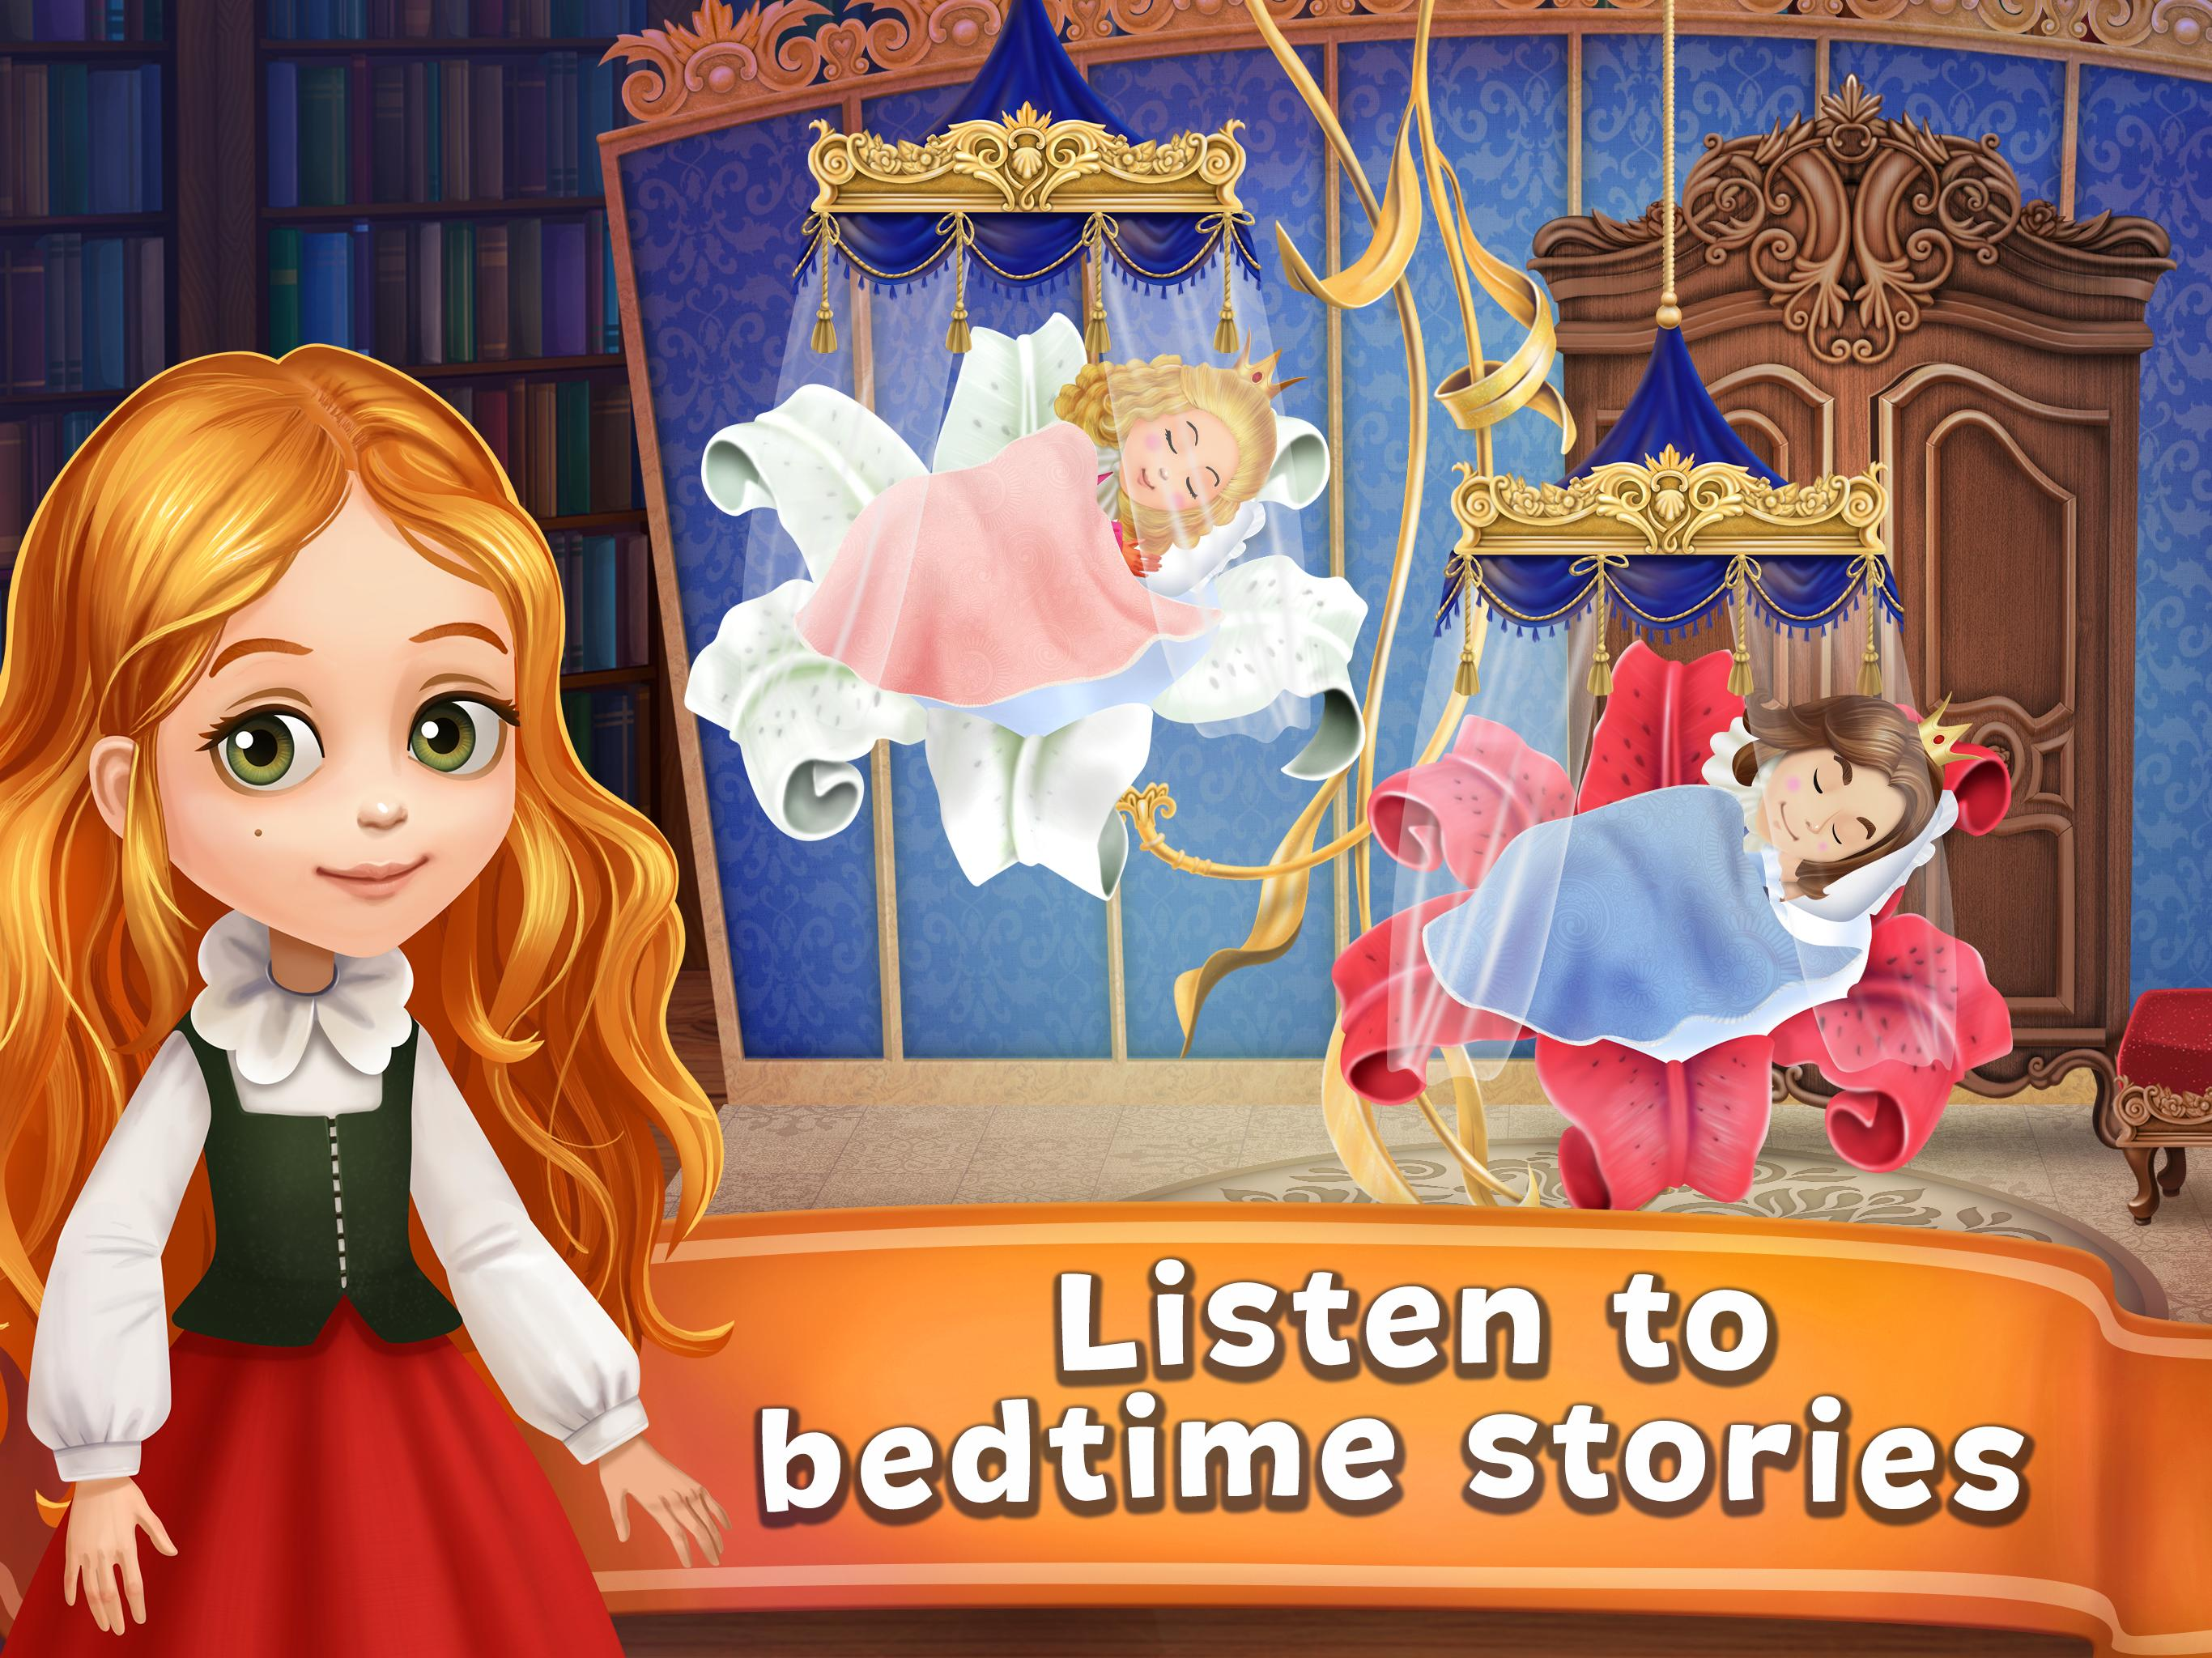 Fairy Tales Children's Books, Stories and Games 2.7.0 Screenshot 14